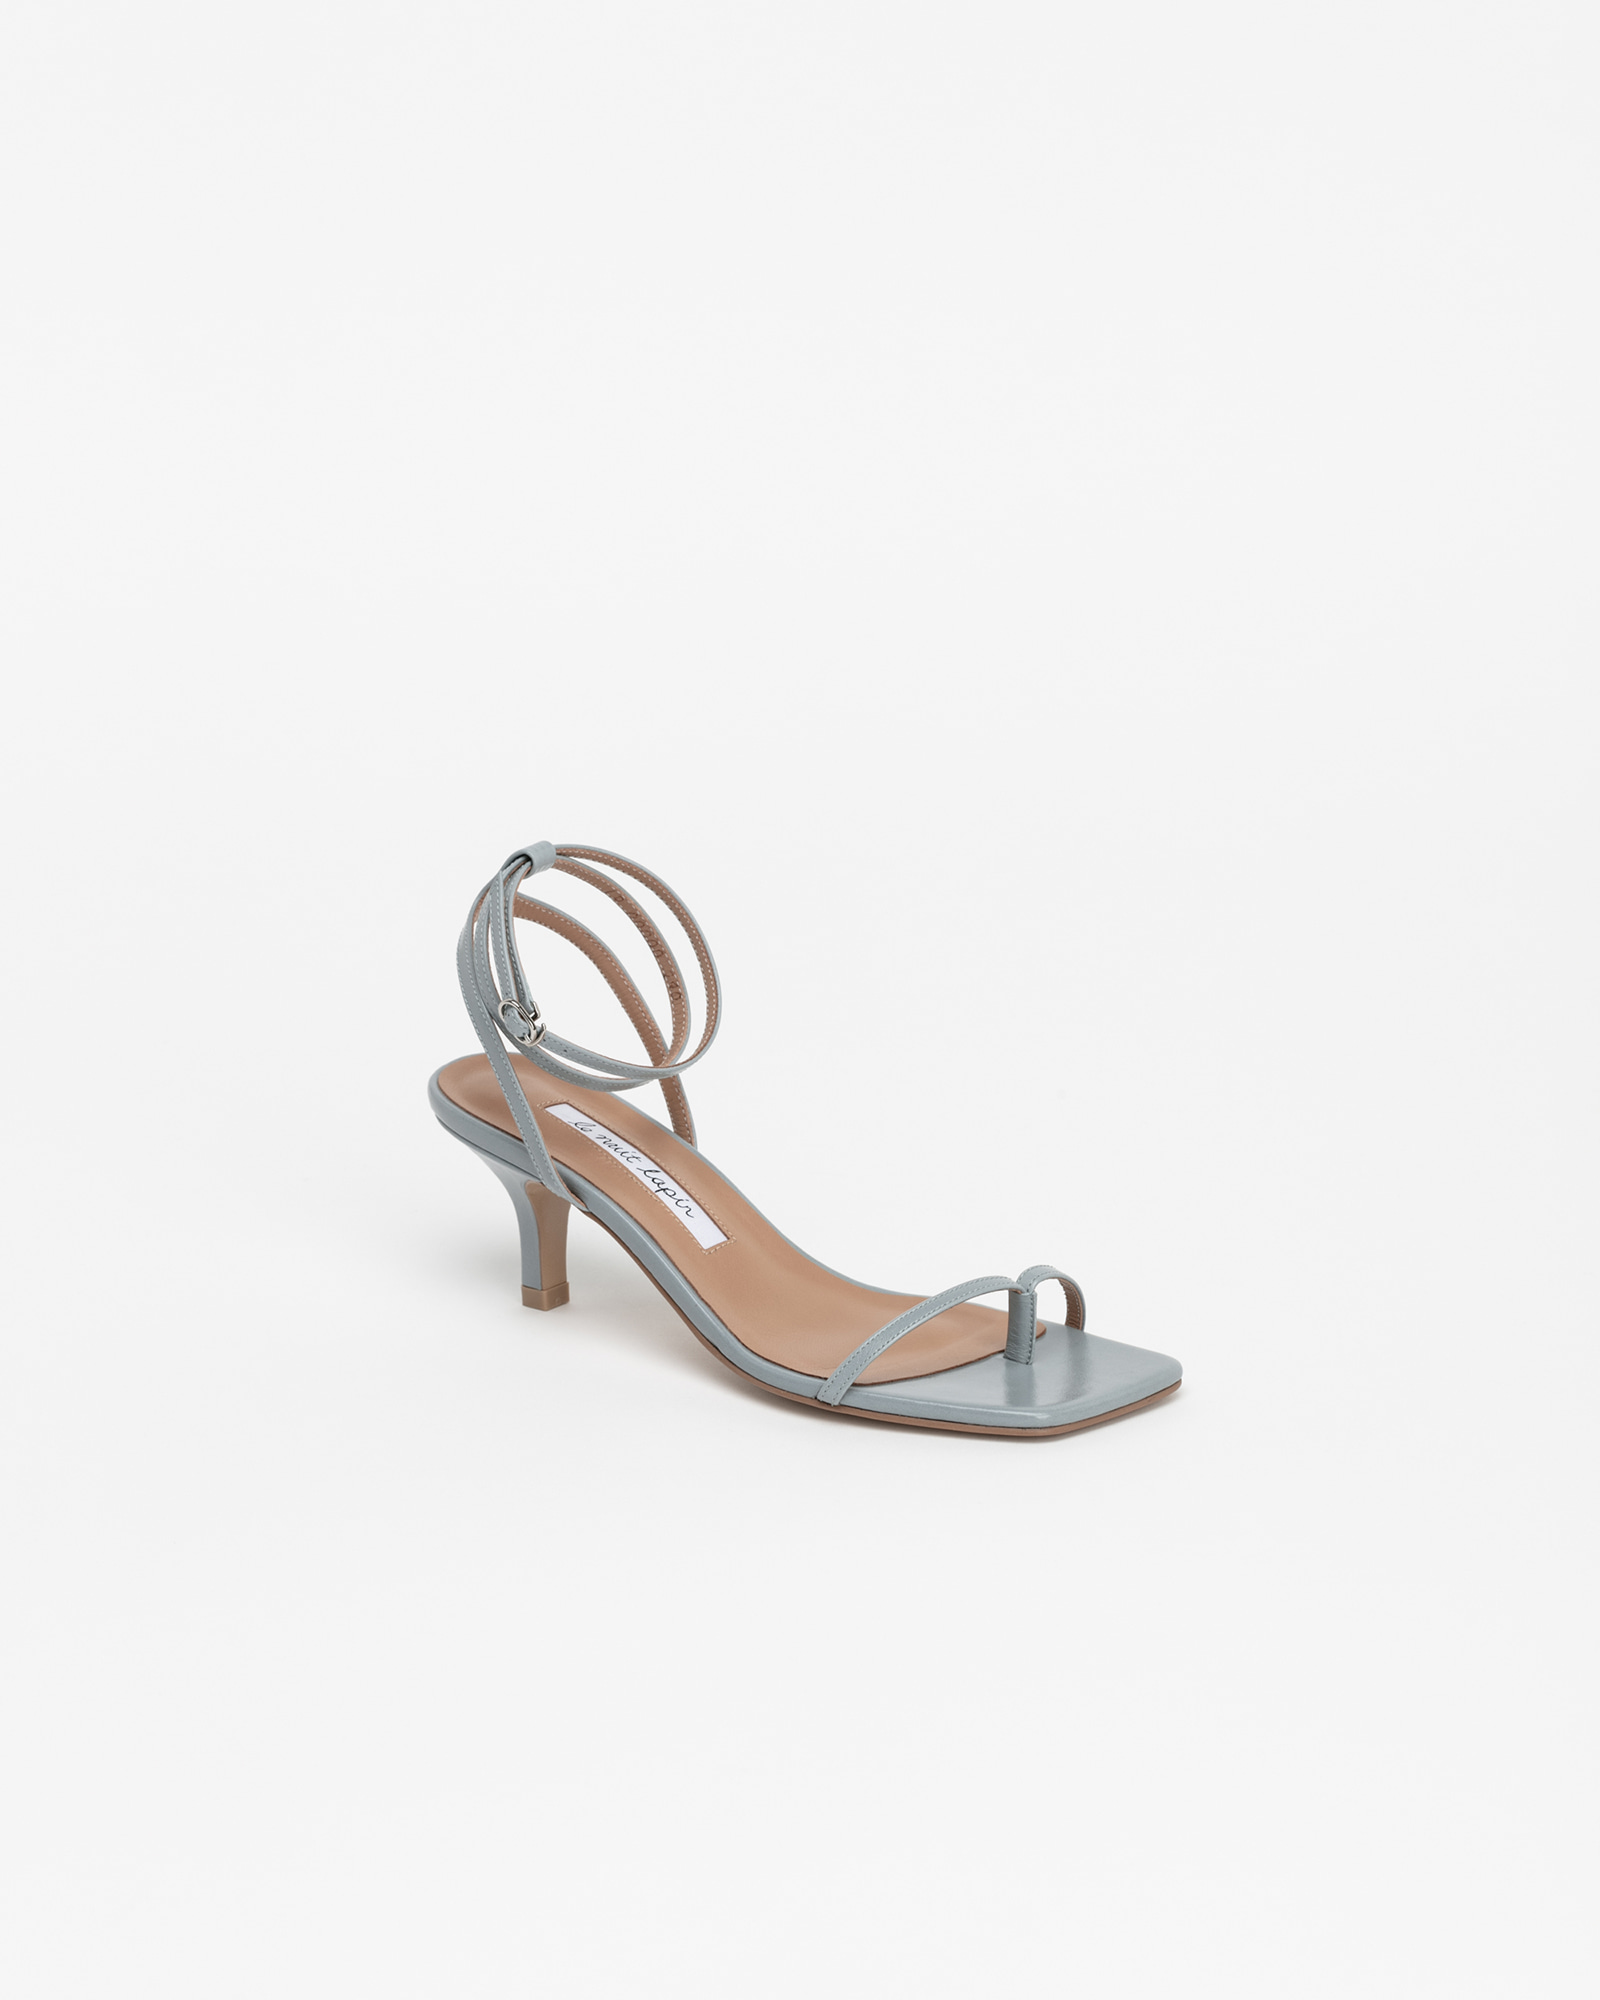 Evelaine Thong Strap Sandals in Blue Textured Patent